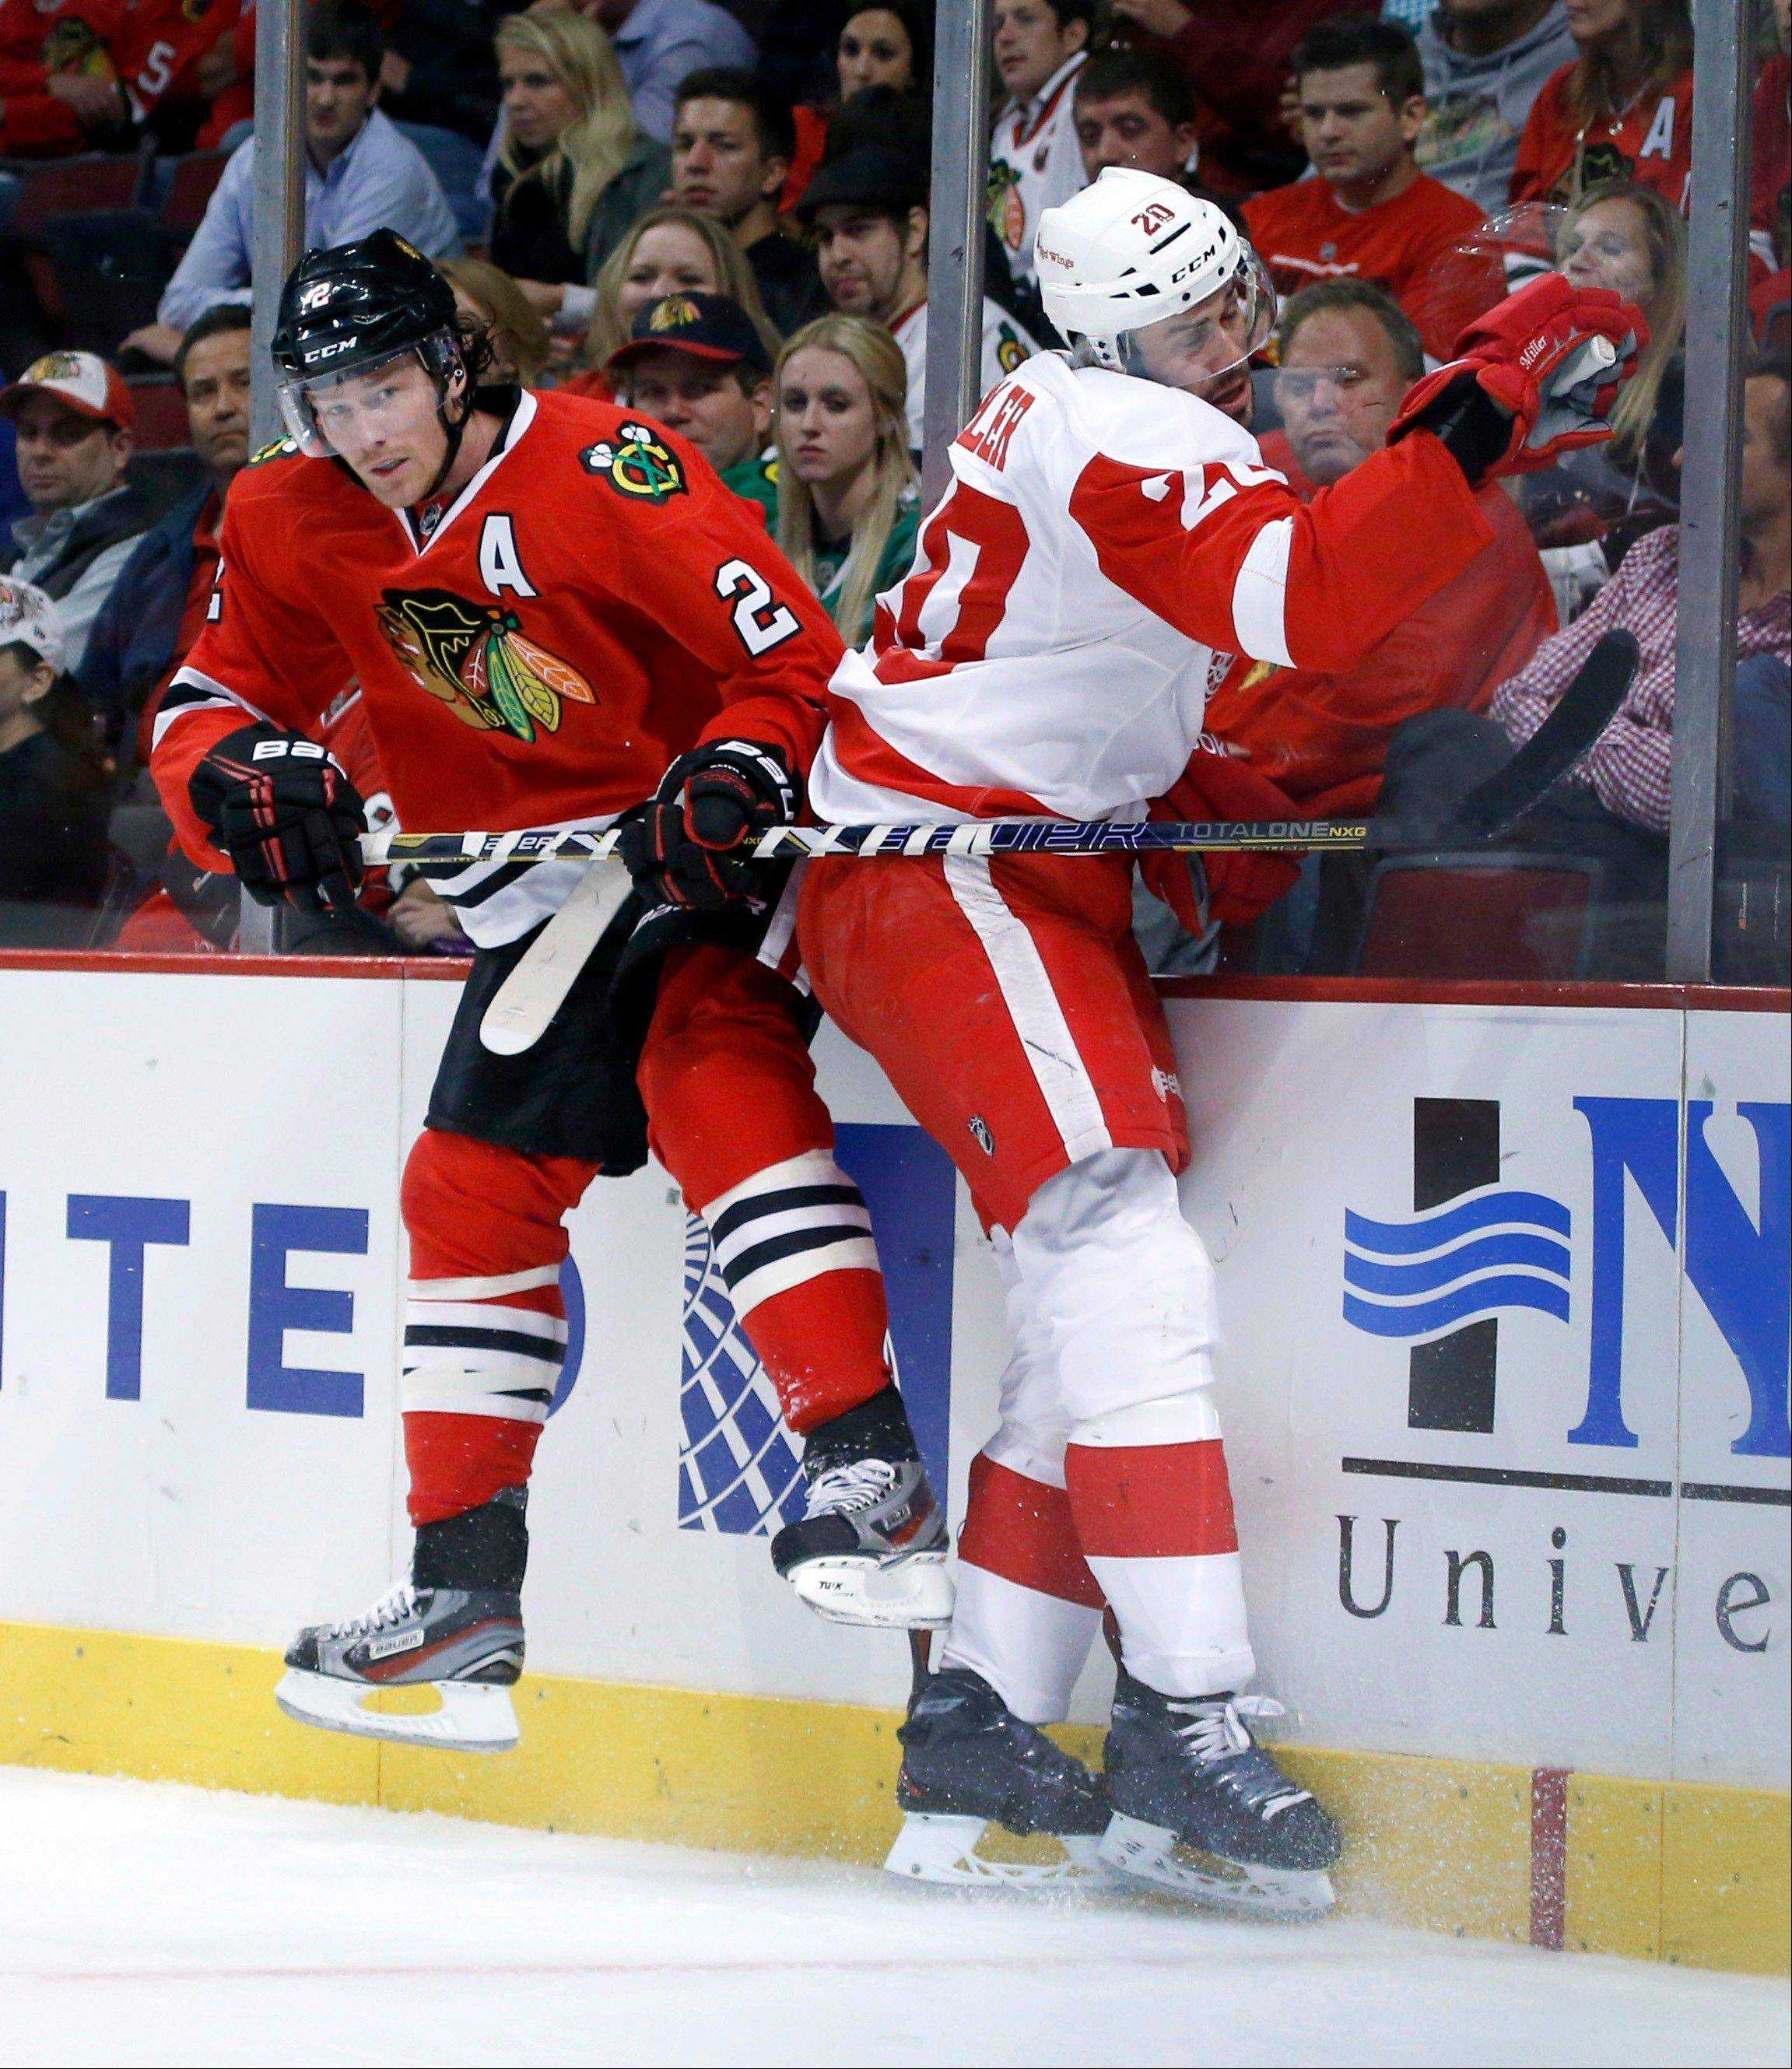 Blackhawks defenseman Duncan Keith checks Detroit Red Wings left wing Drew Miller into the boards during the first period Tuesday night at the United Center.